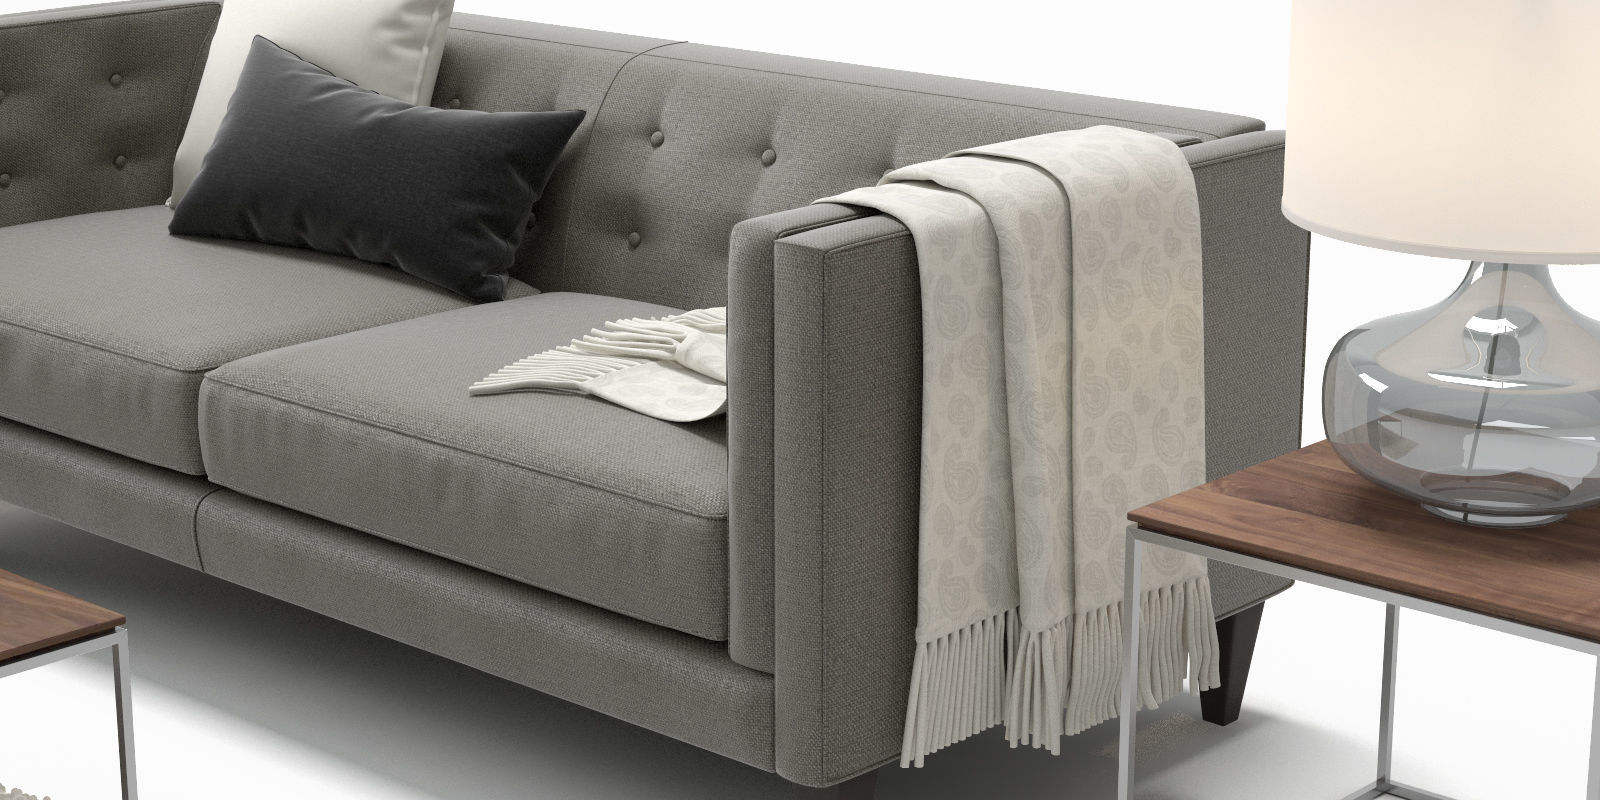 3D Crate And Barrel Aidan Sofa Chair | Cgtrader Regarding Aidan Ii Sofa Chairs (Image 1 of 20)